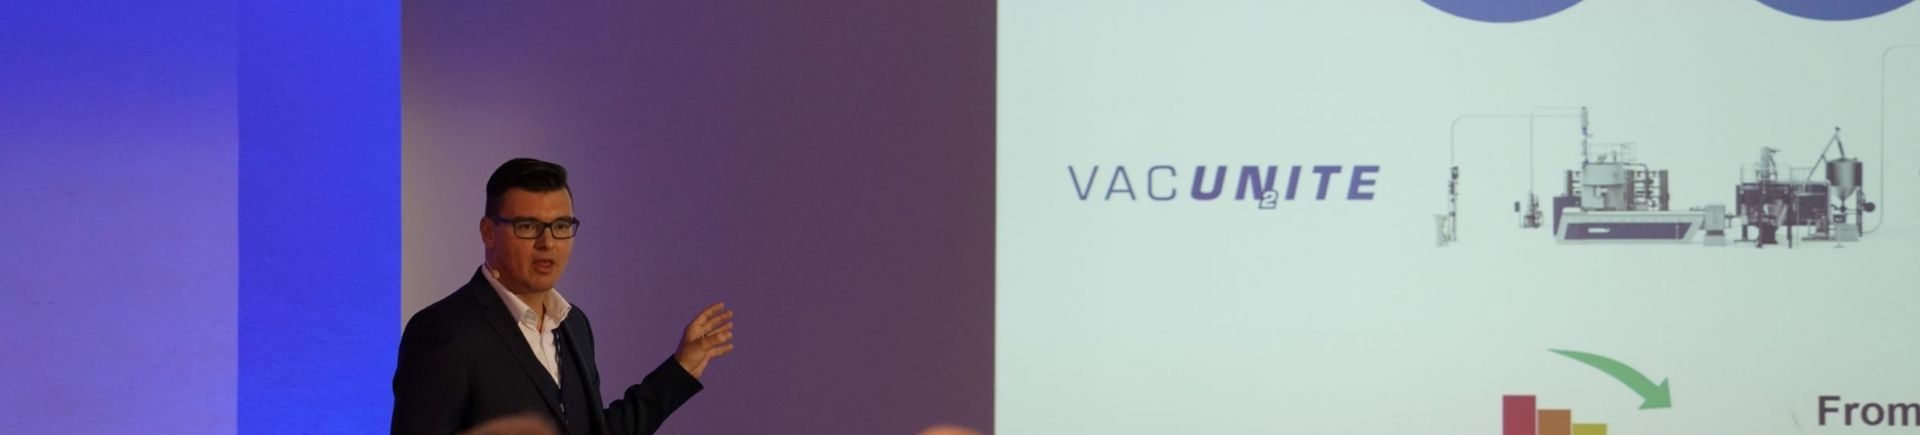 VACUNITE technology